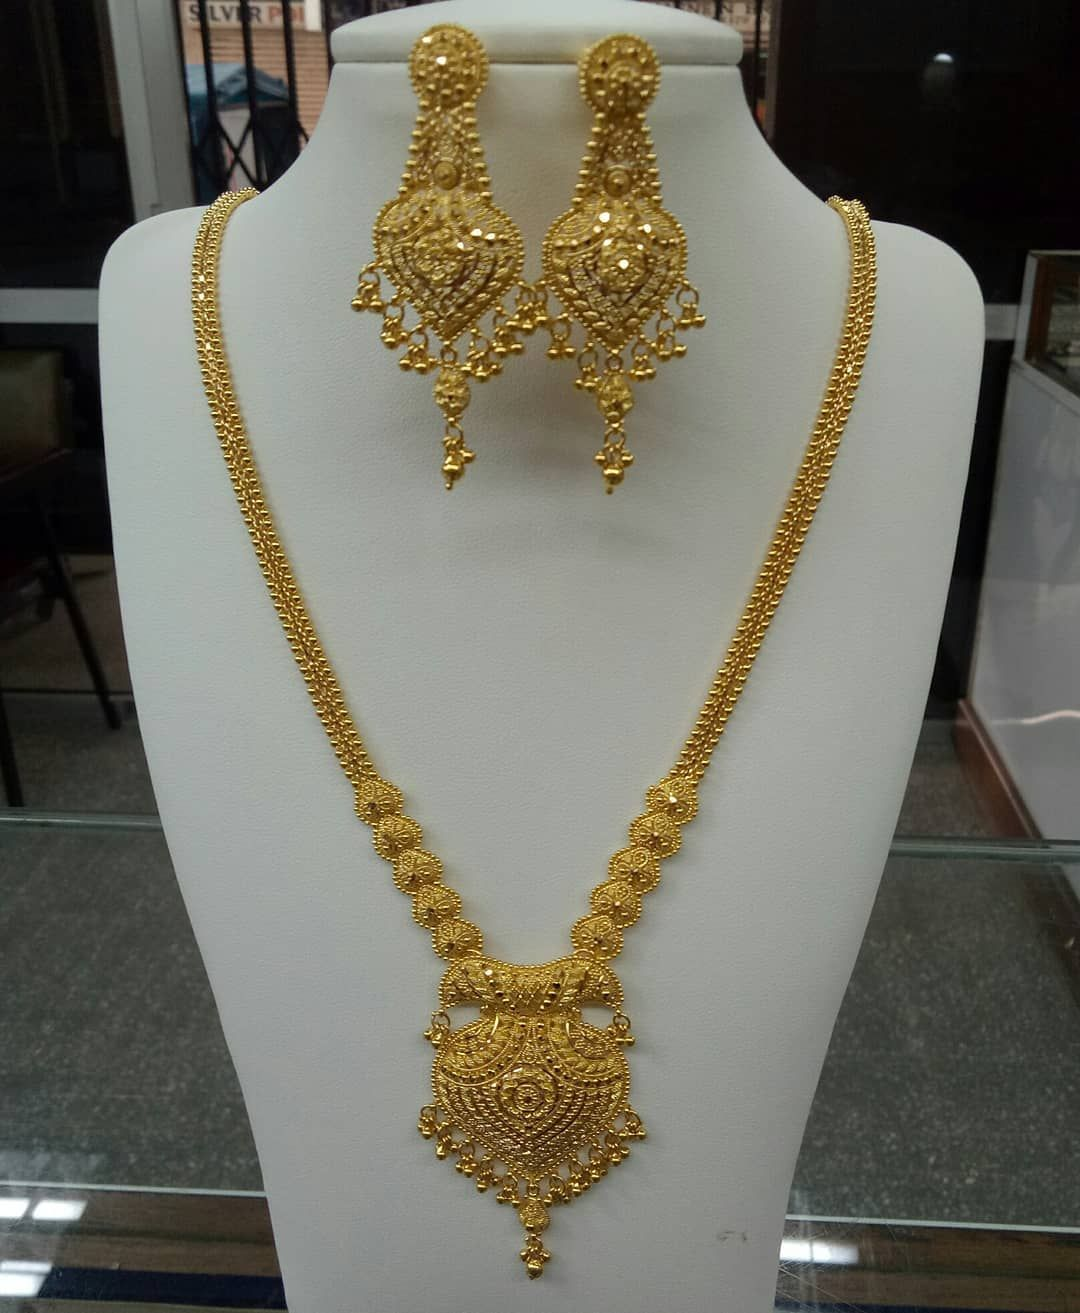 Image May Contain Jewelry Bridal Gold Jewellery Gold Jewelry Fashion Gold Necklace Designs